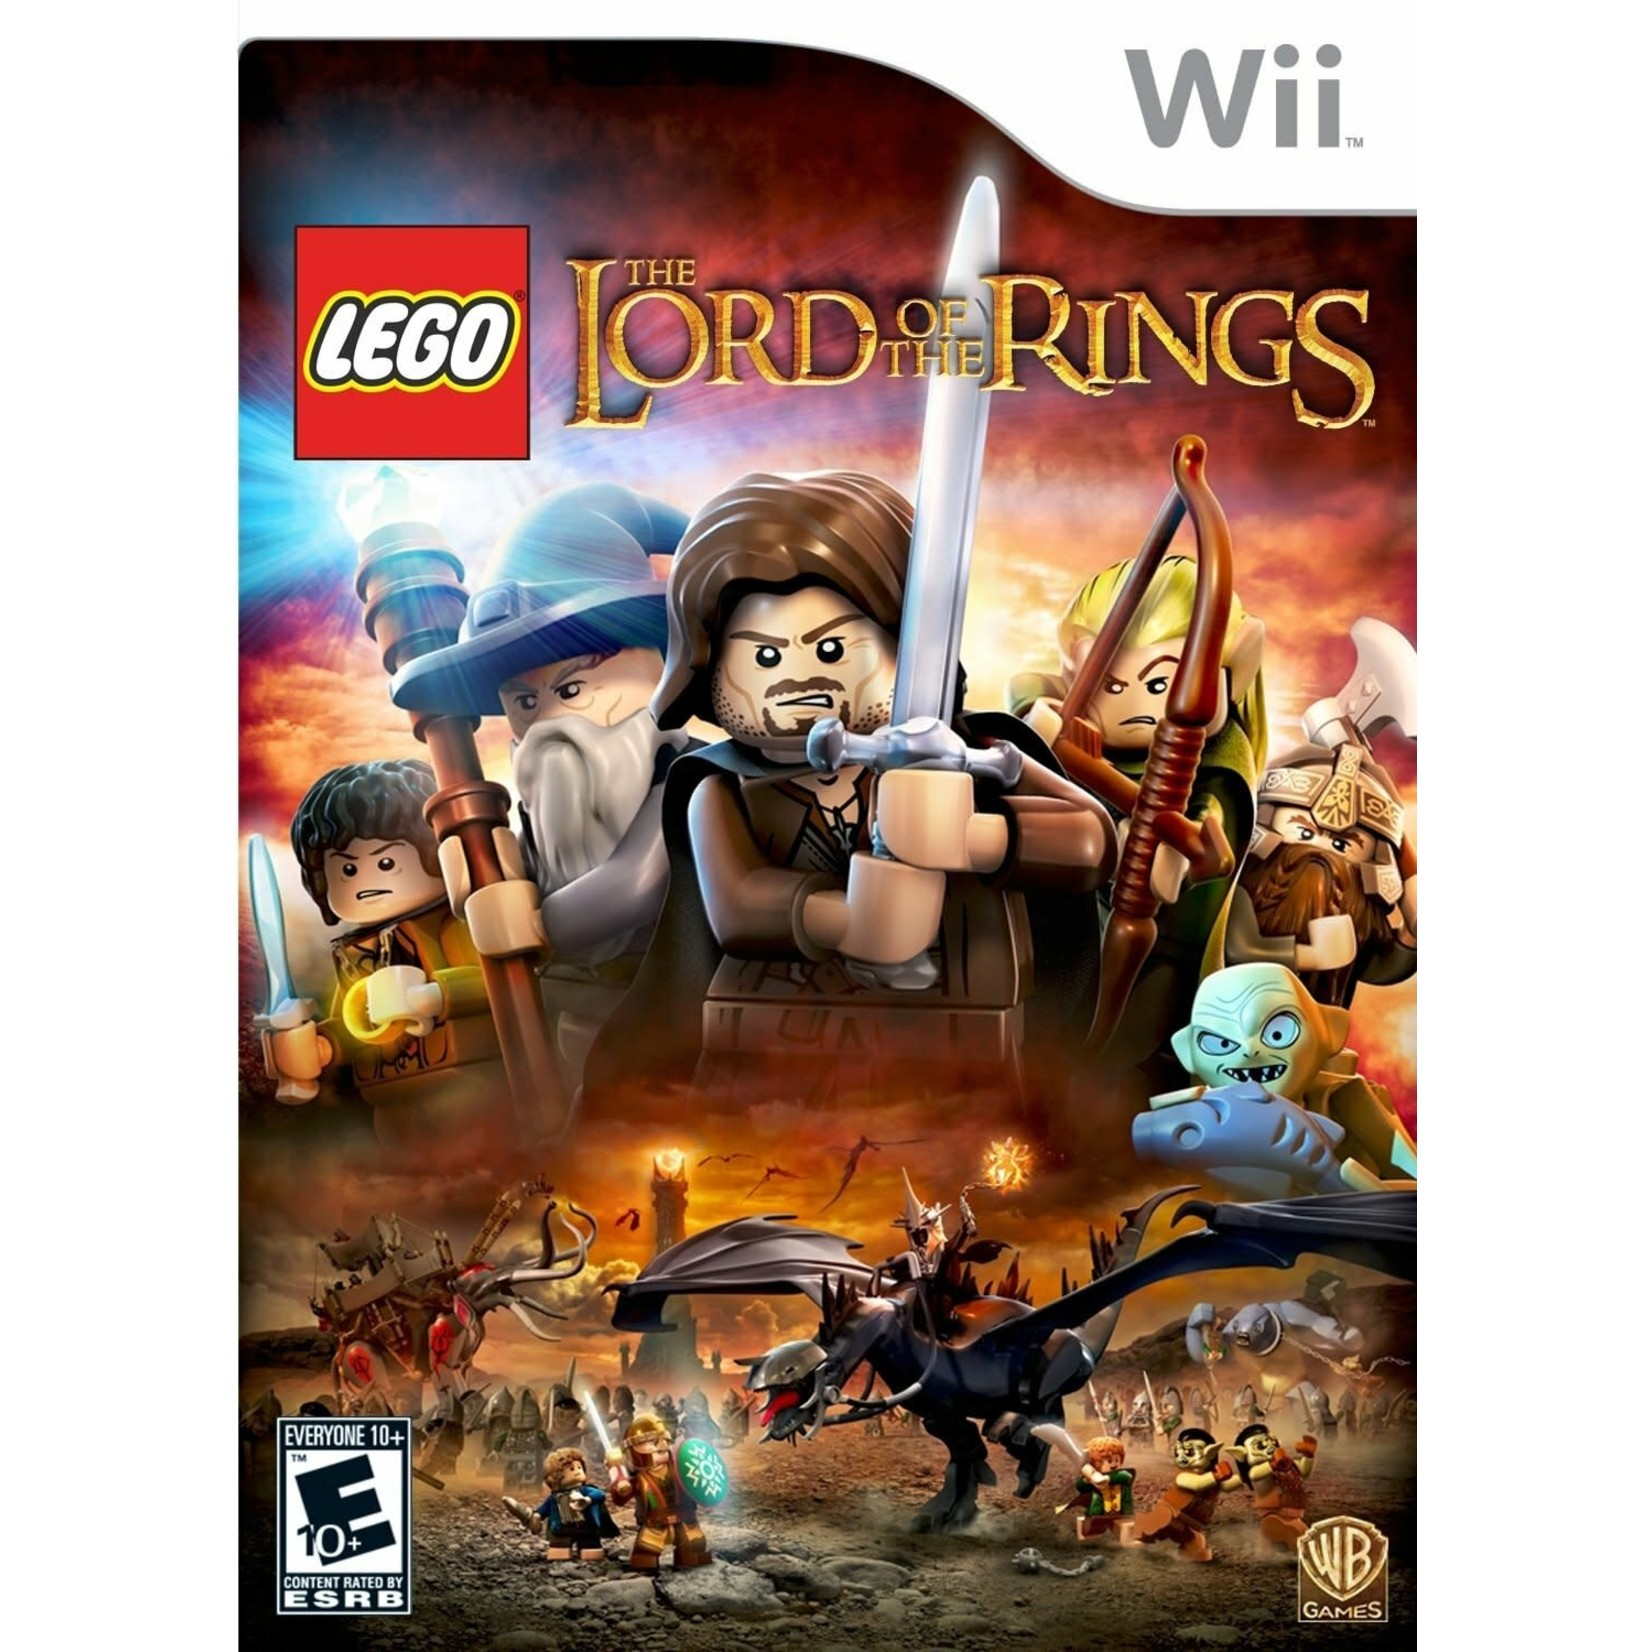 WII-LEGO Lord of the Rings